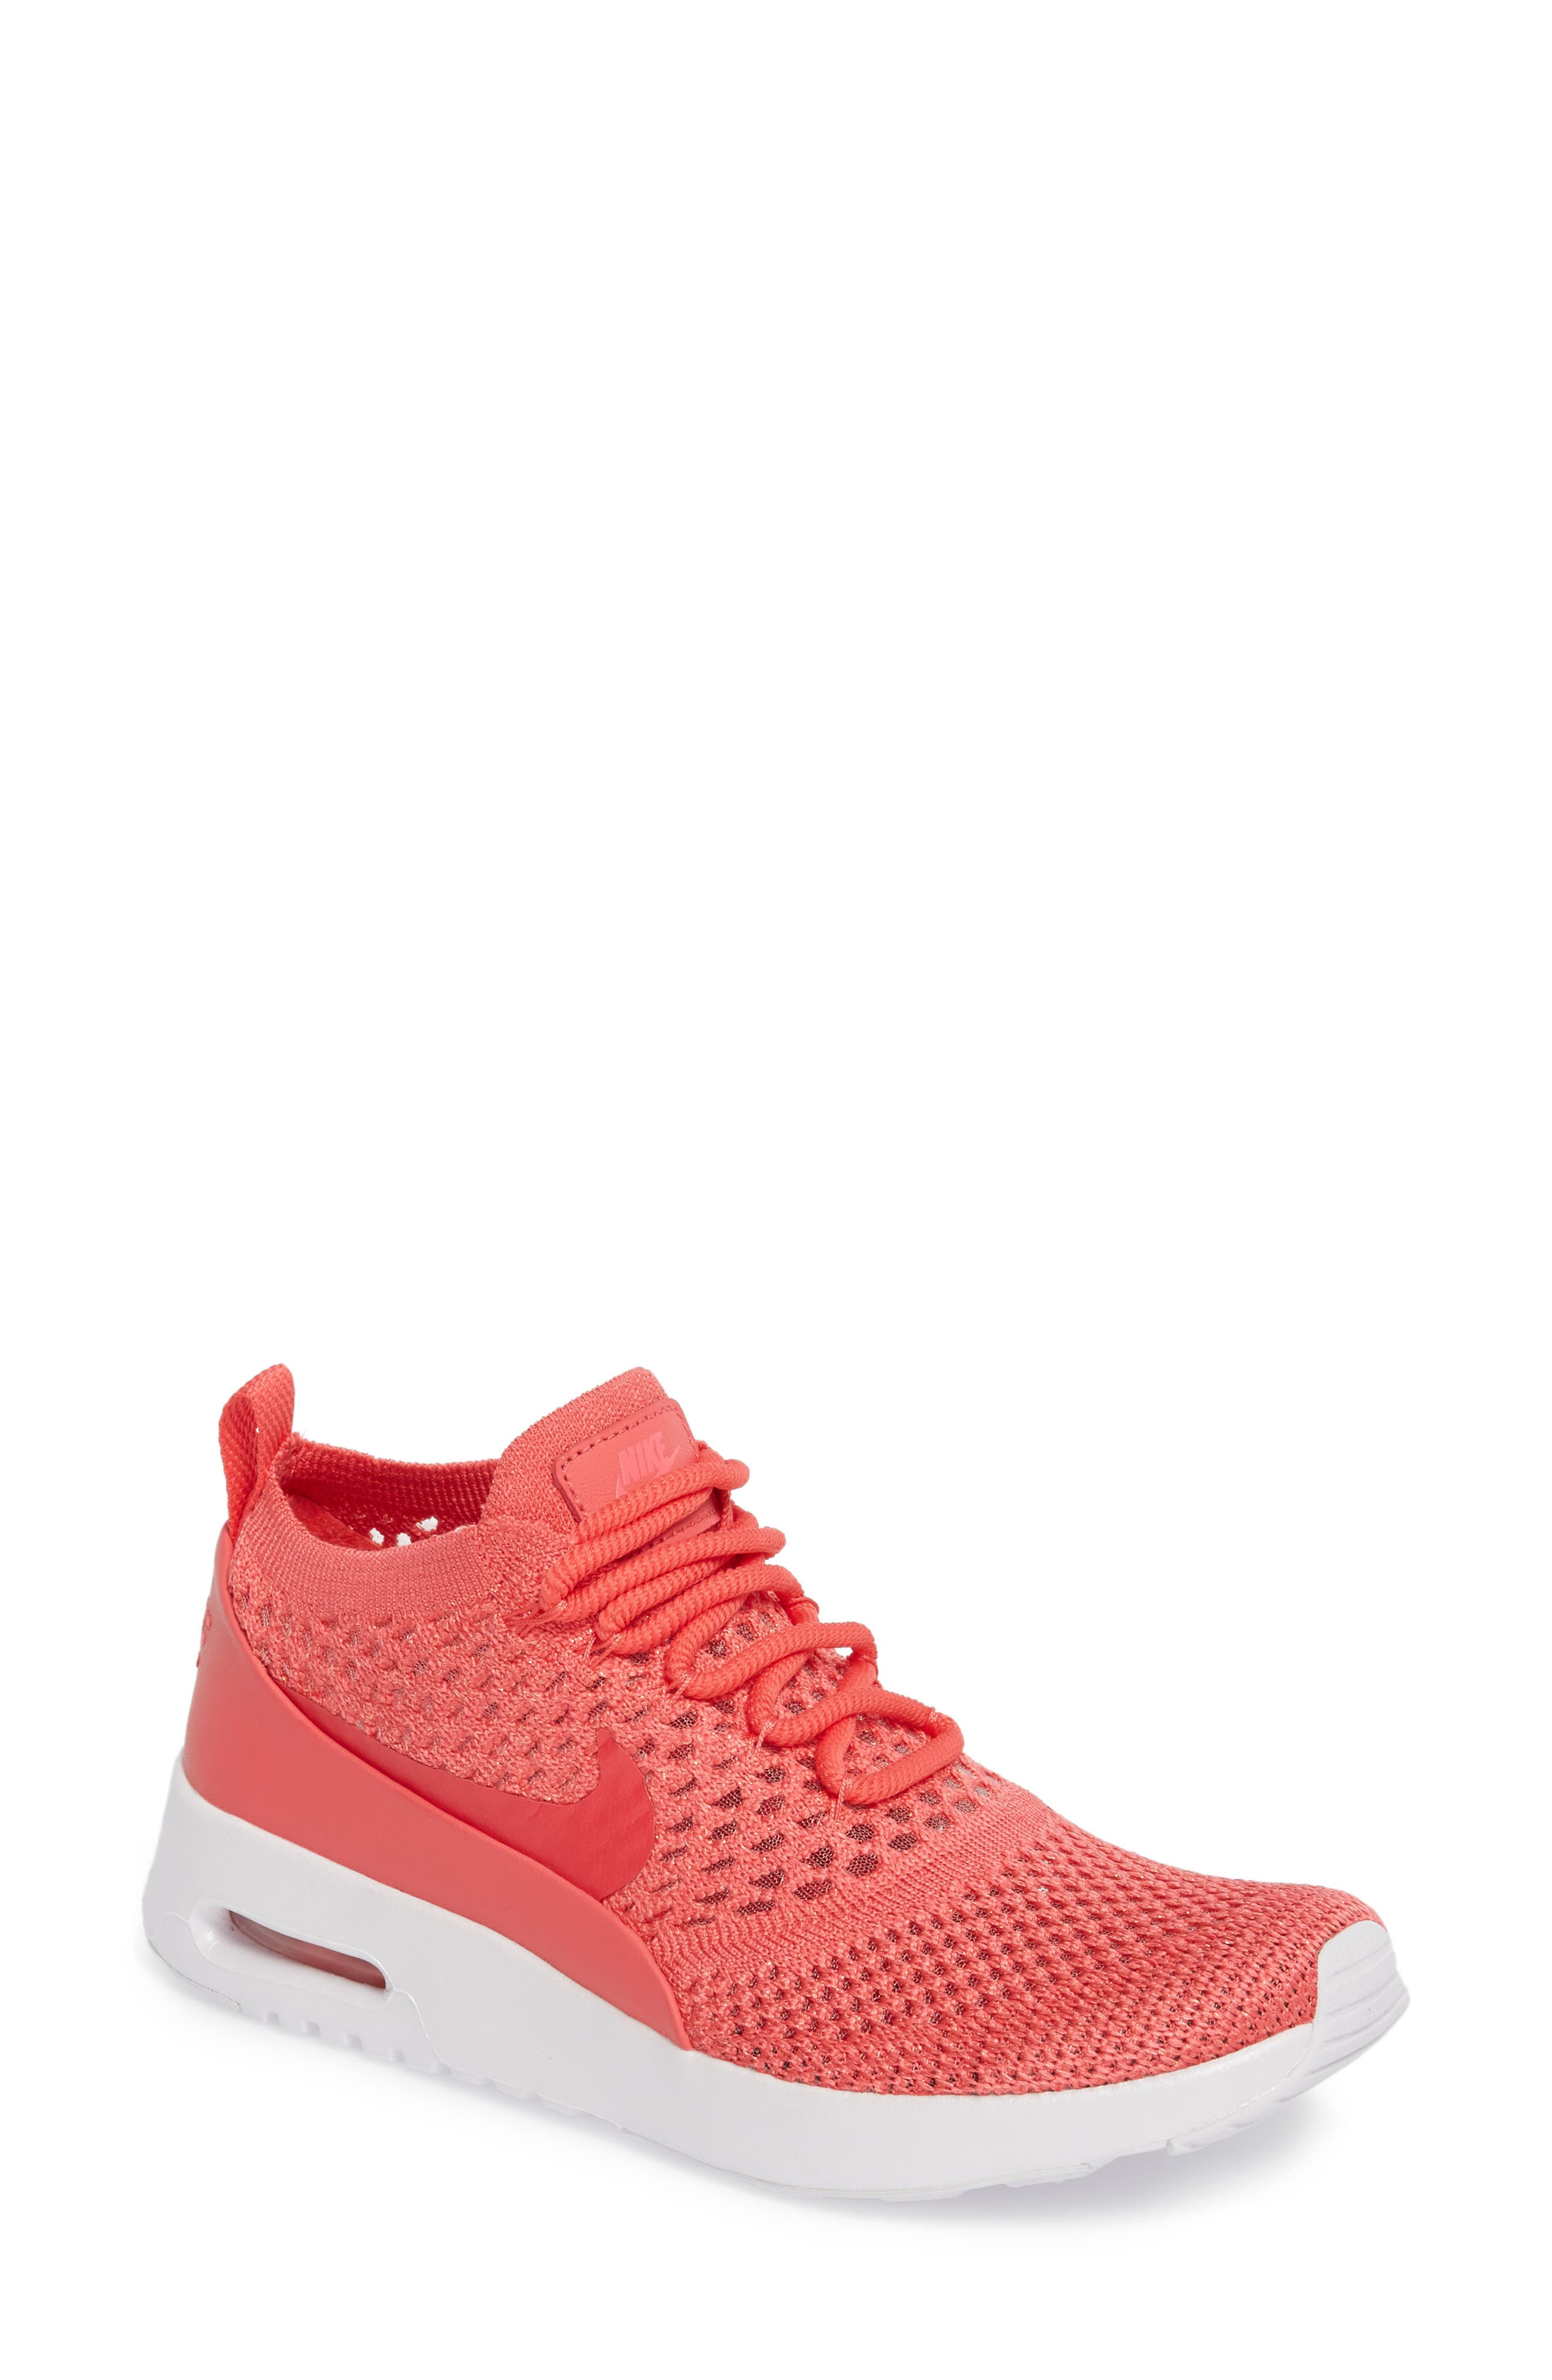 Air Max Thea Ultra Flyknit Sneaker,                         Main,                         color, Geranium/ Geranium